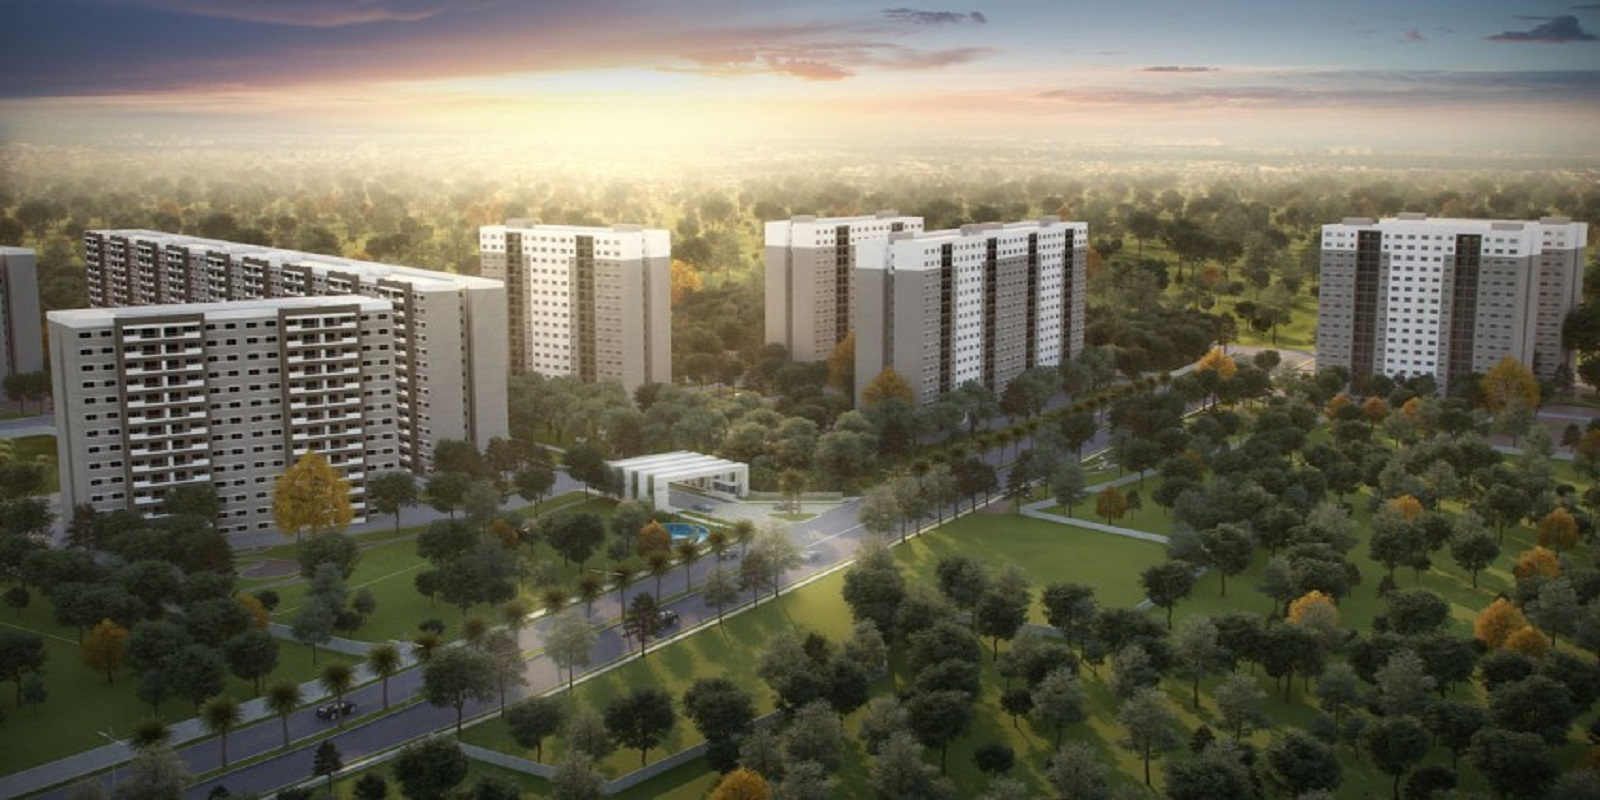 sobha rain forest project tower view2